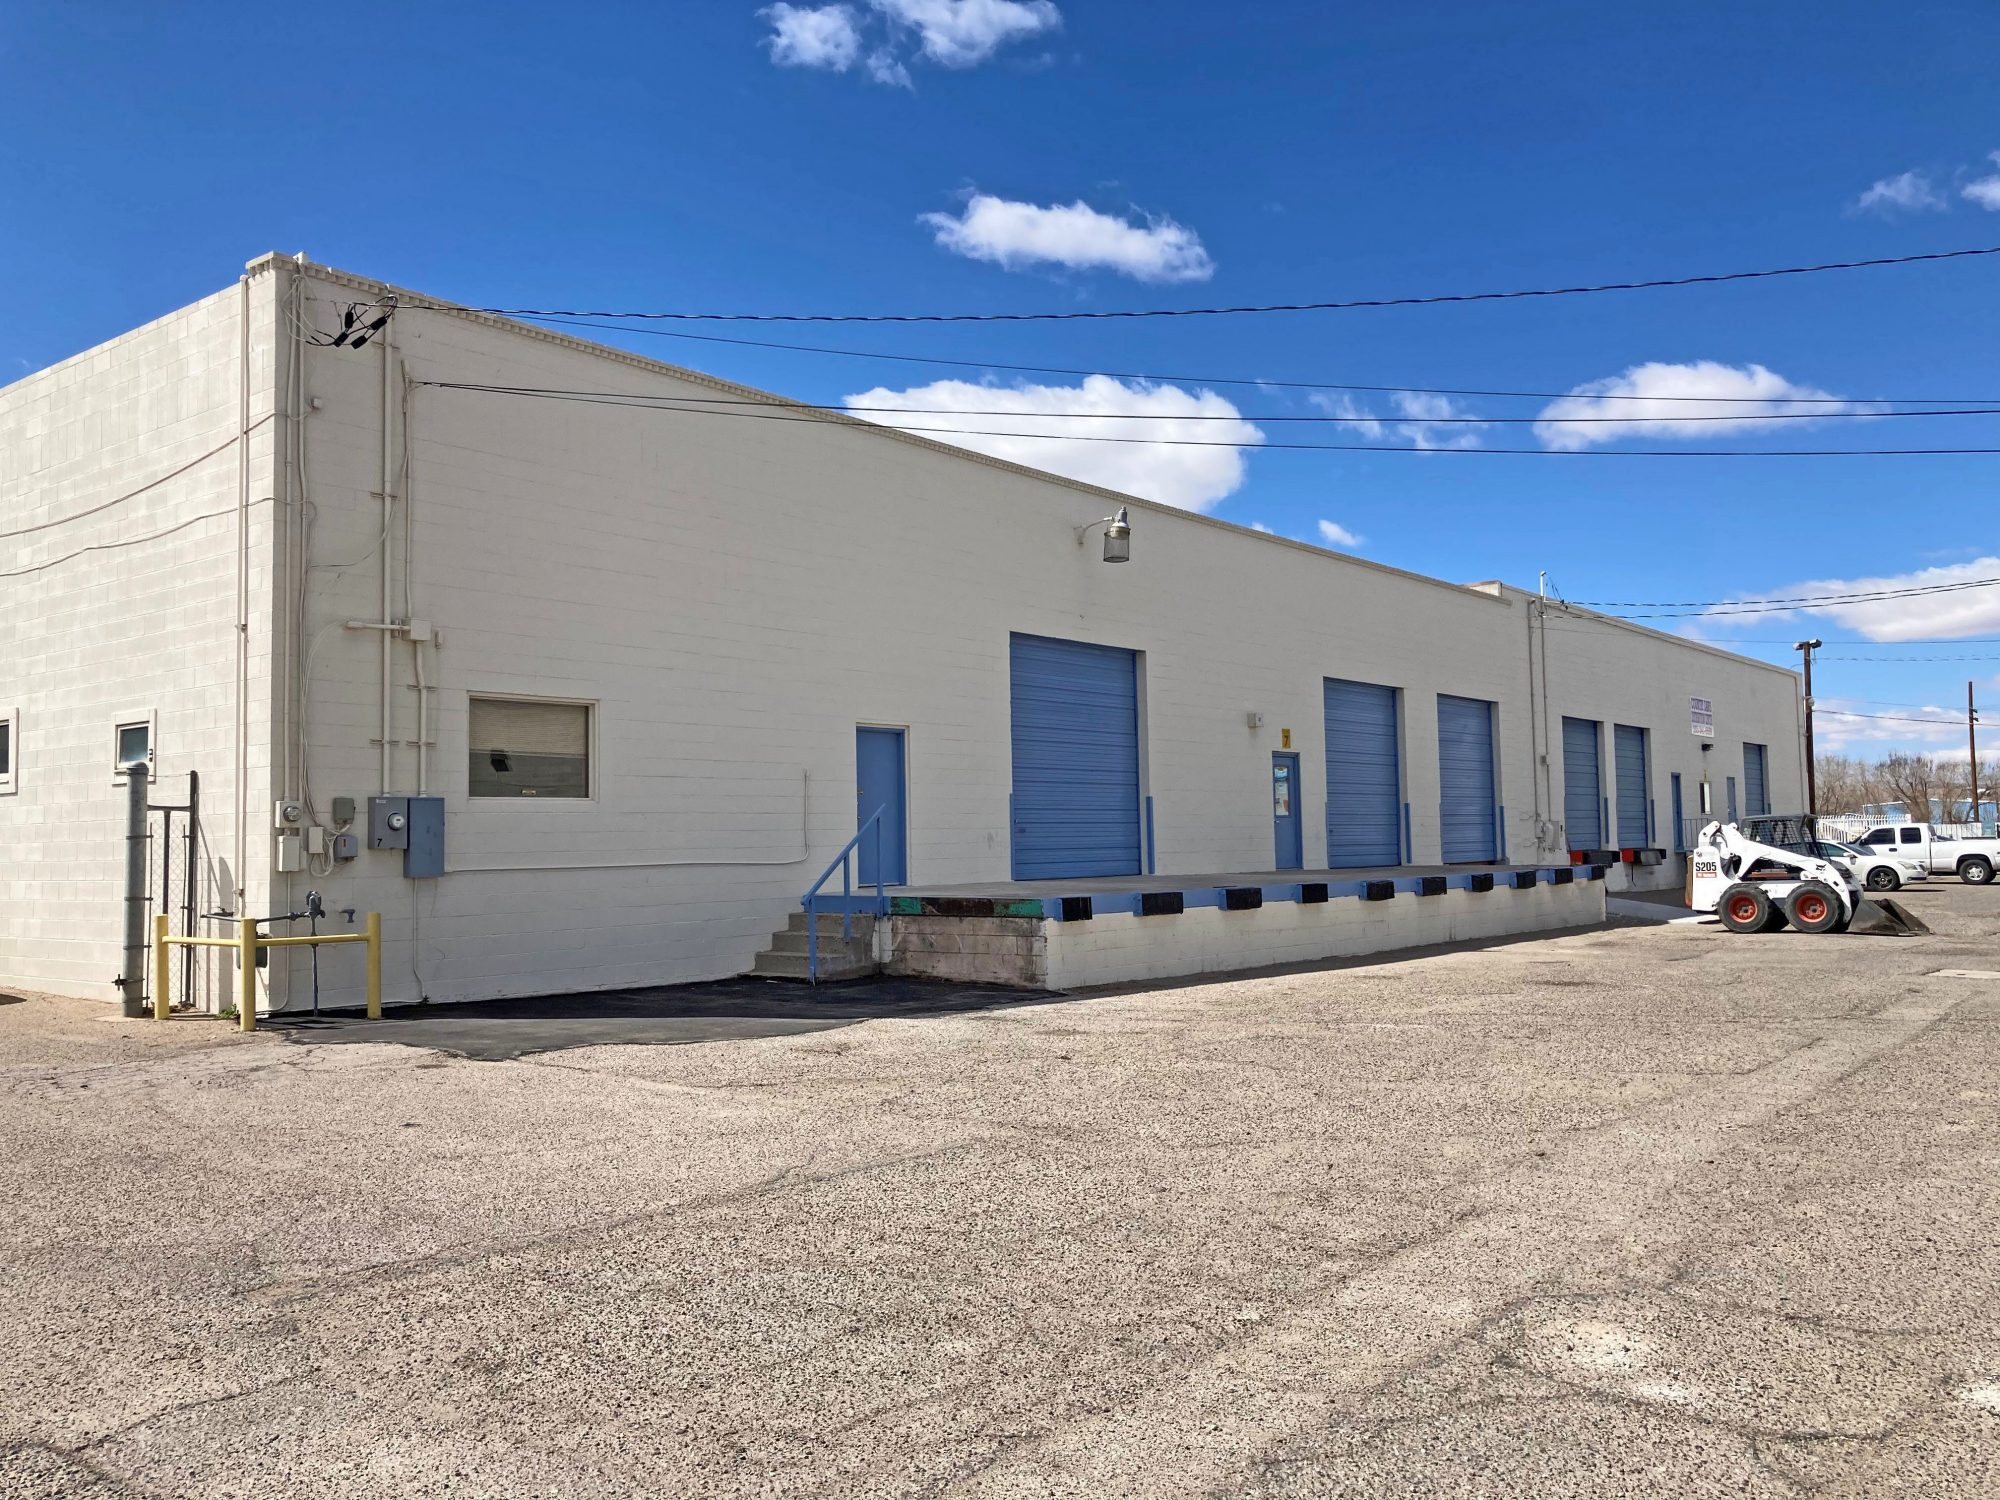 4019 Edith Blvd NE, Bldg 7 – LEASED